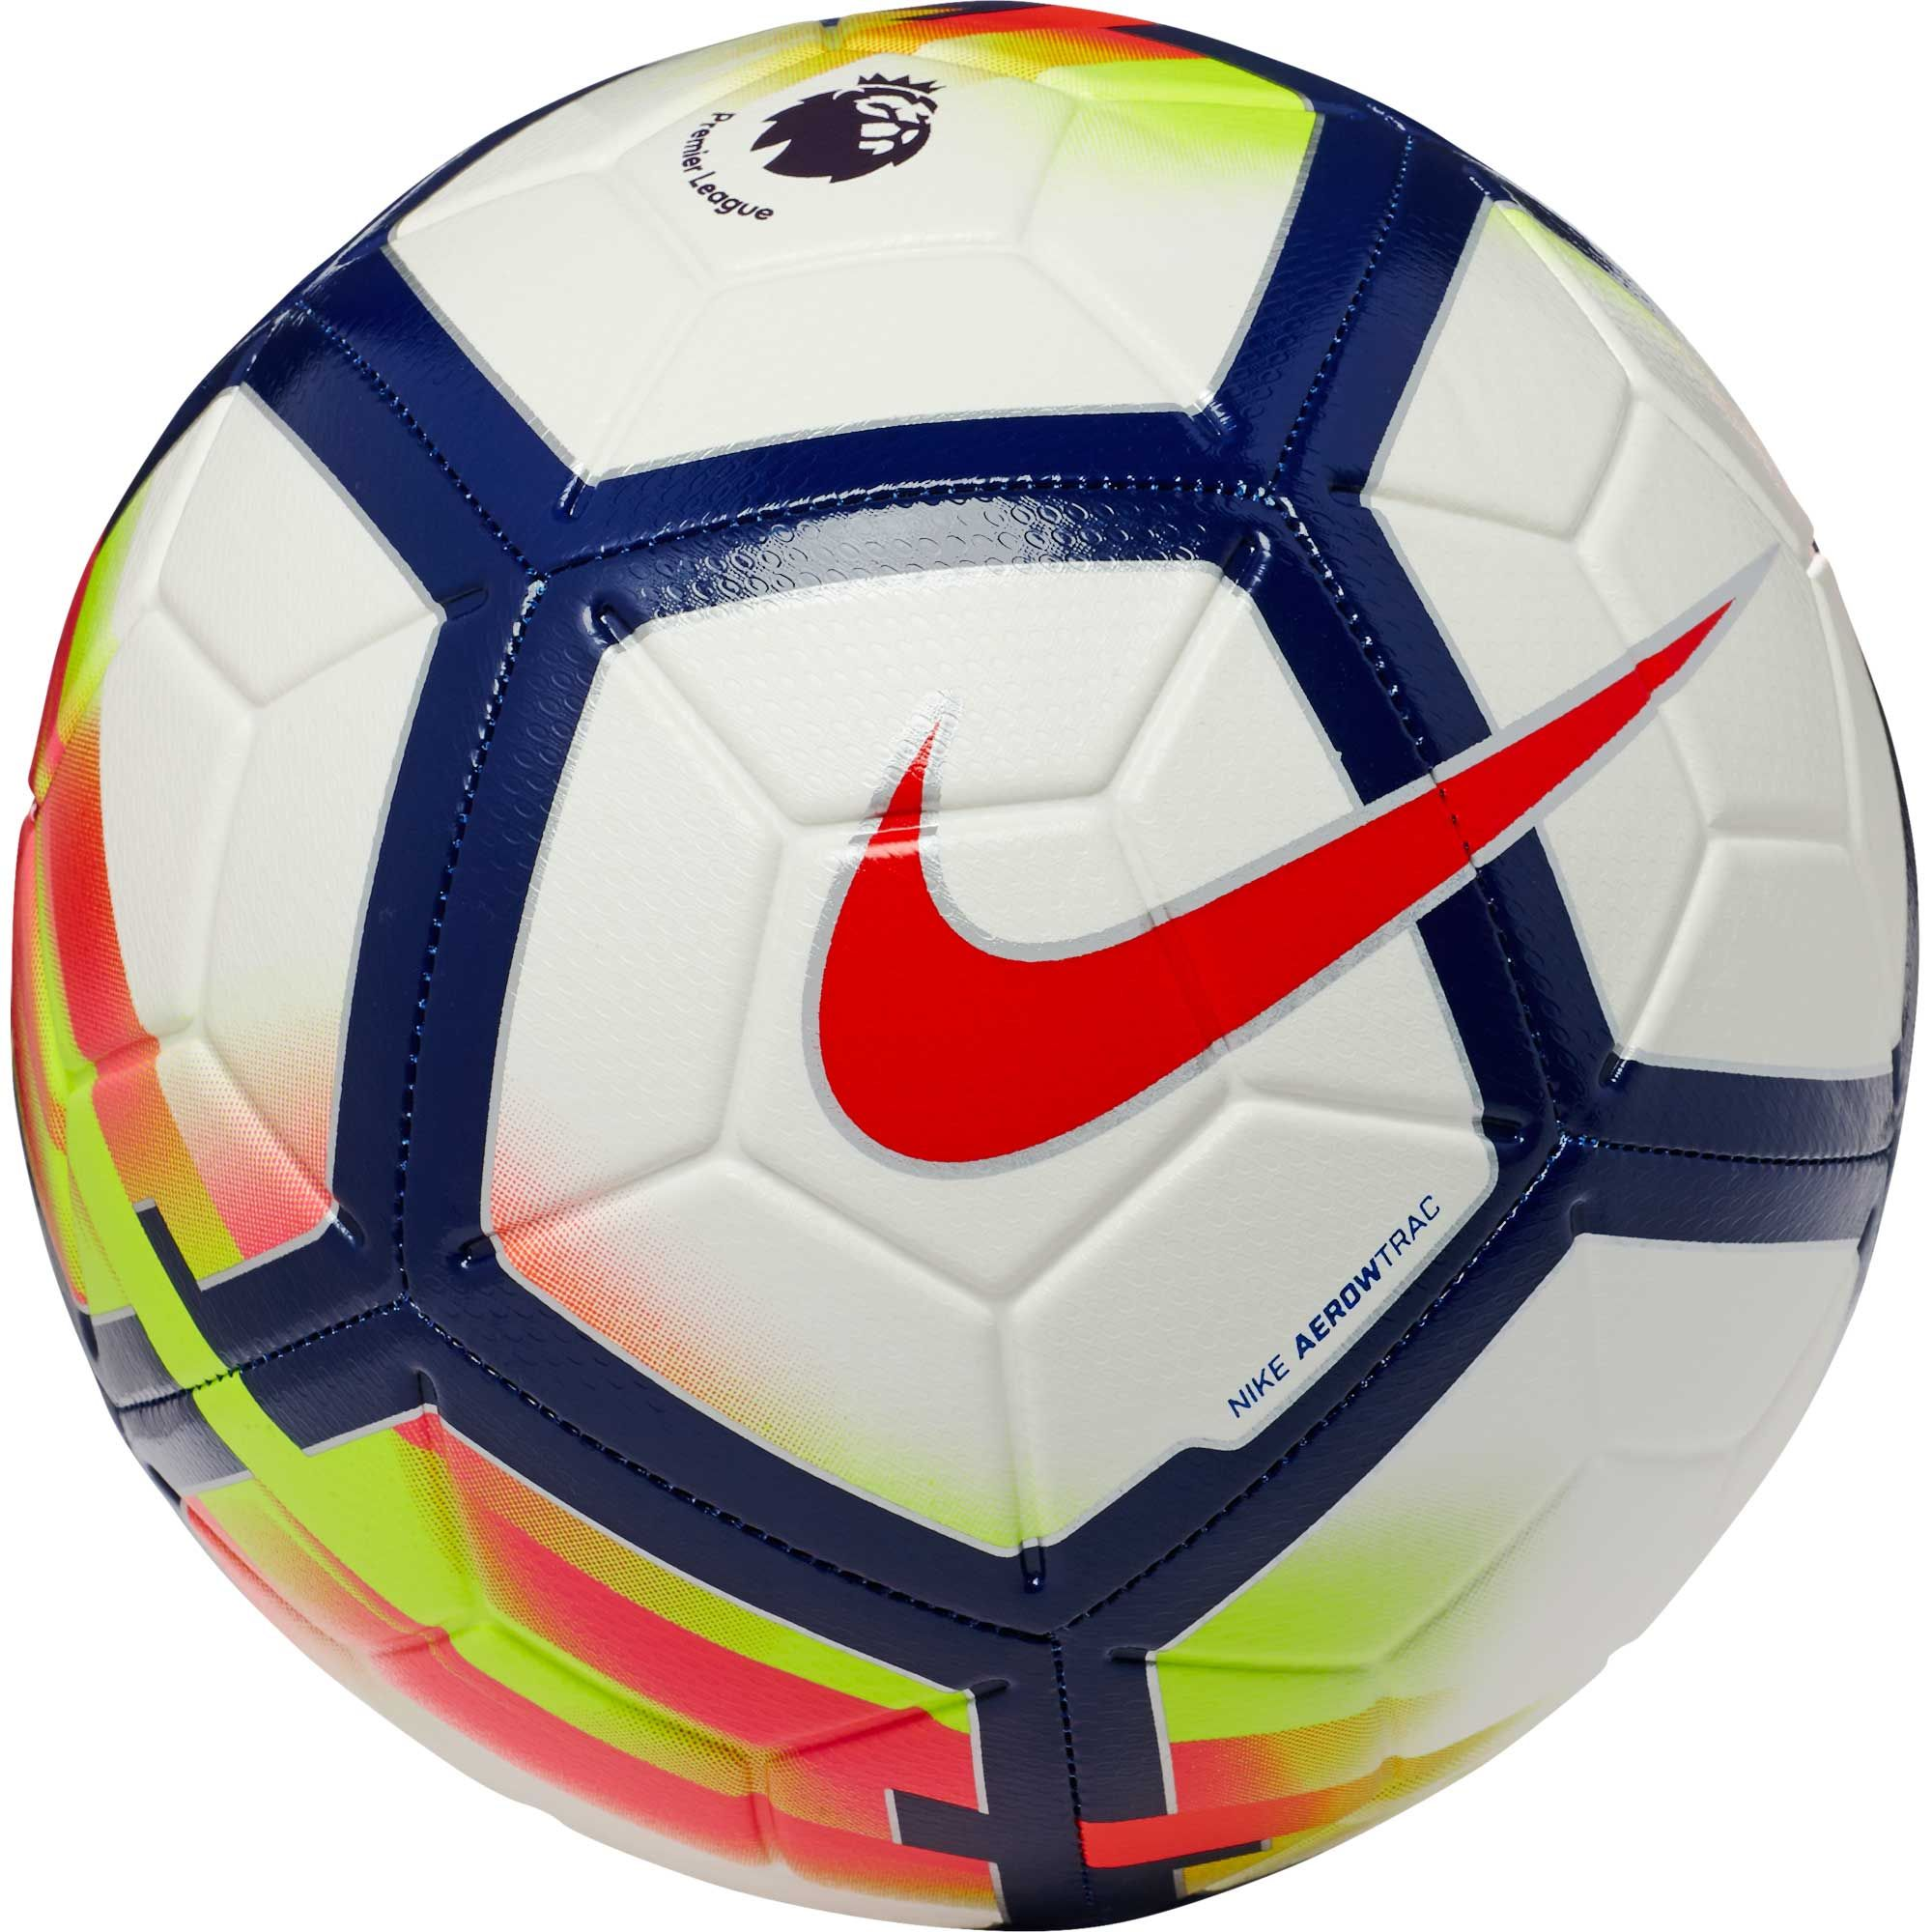 Nike Strike Soccer Ball Premier League Soccer Balls Nike Soccer Ball Soccer Ball Premier League Soccer